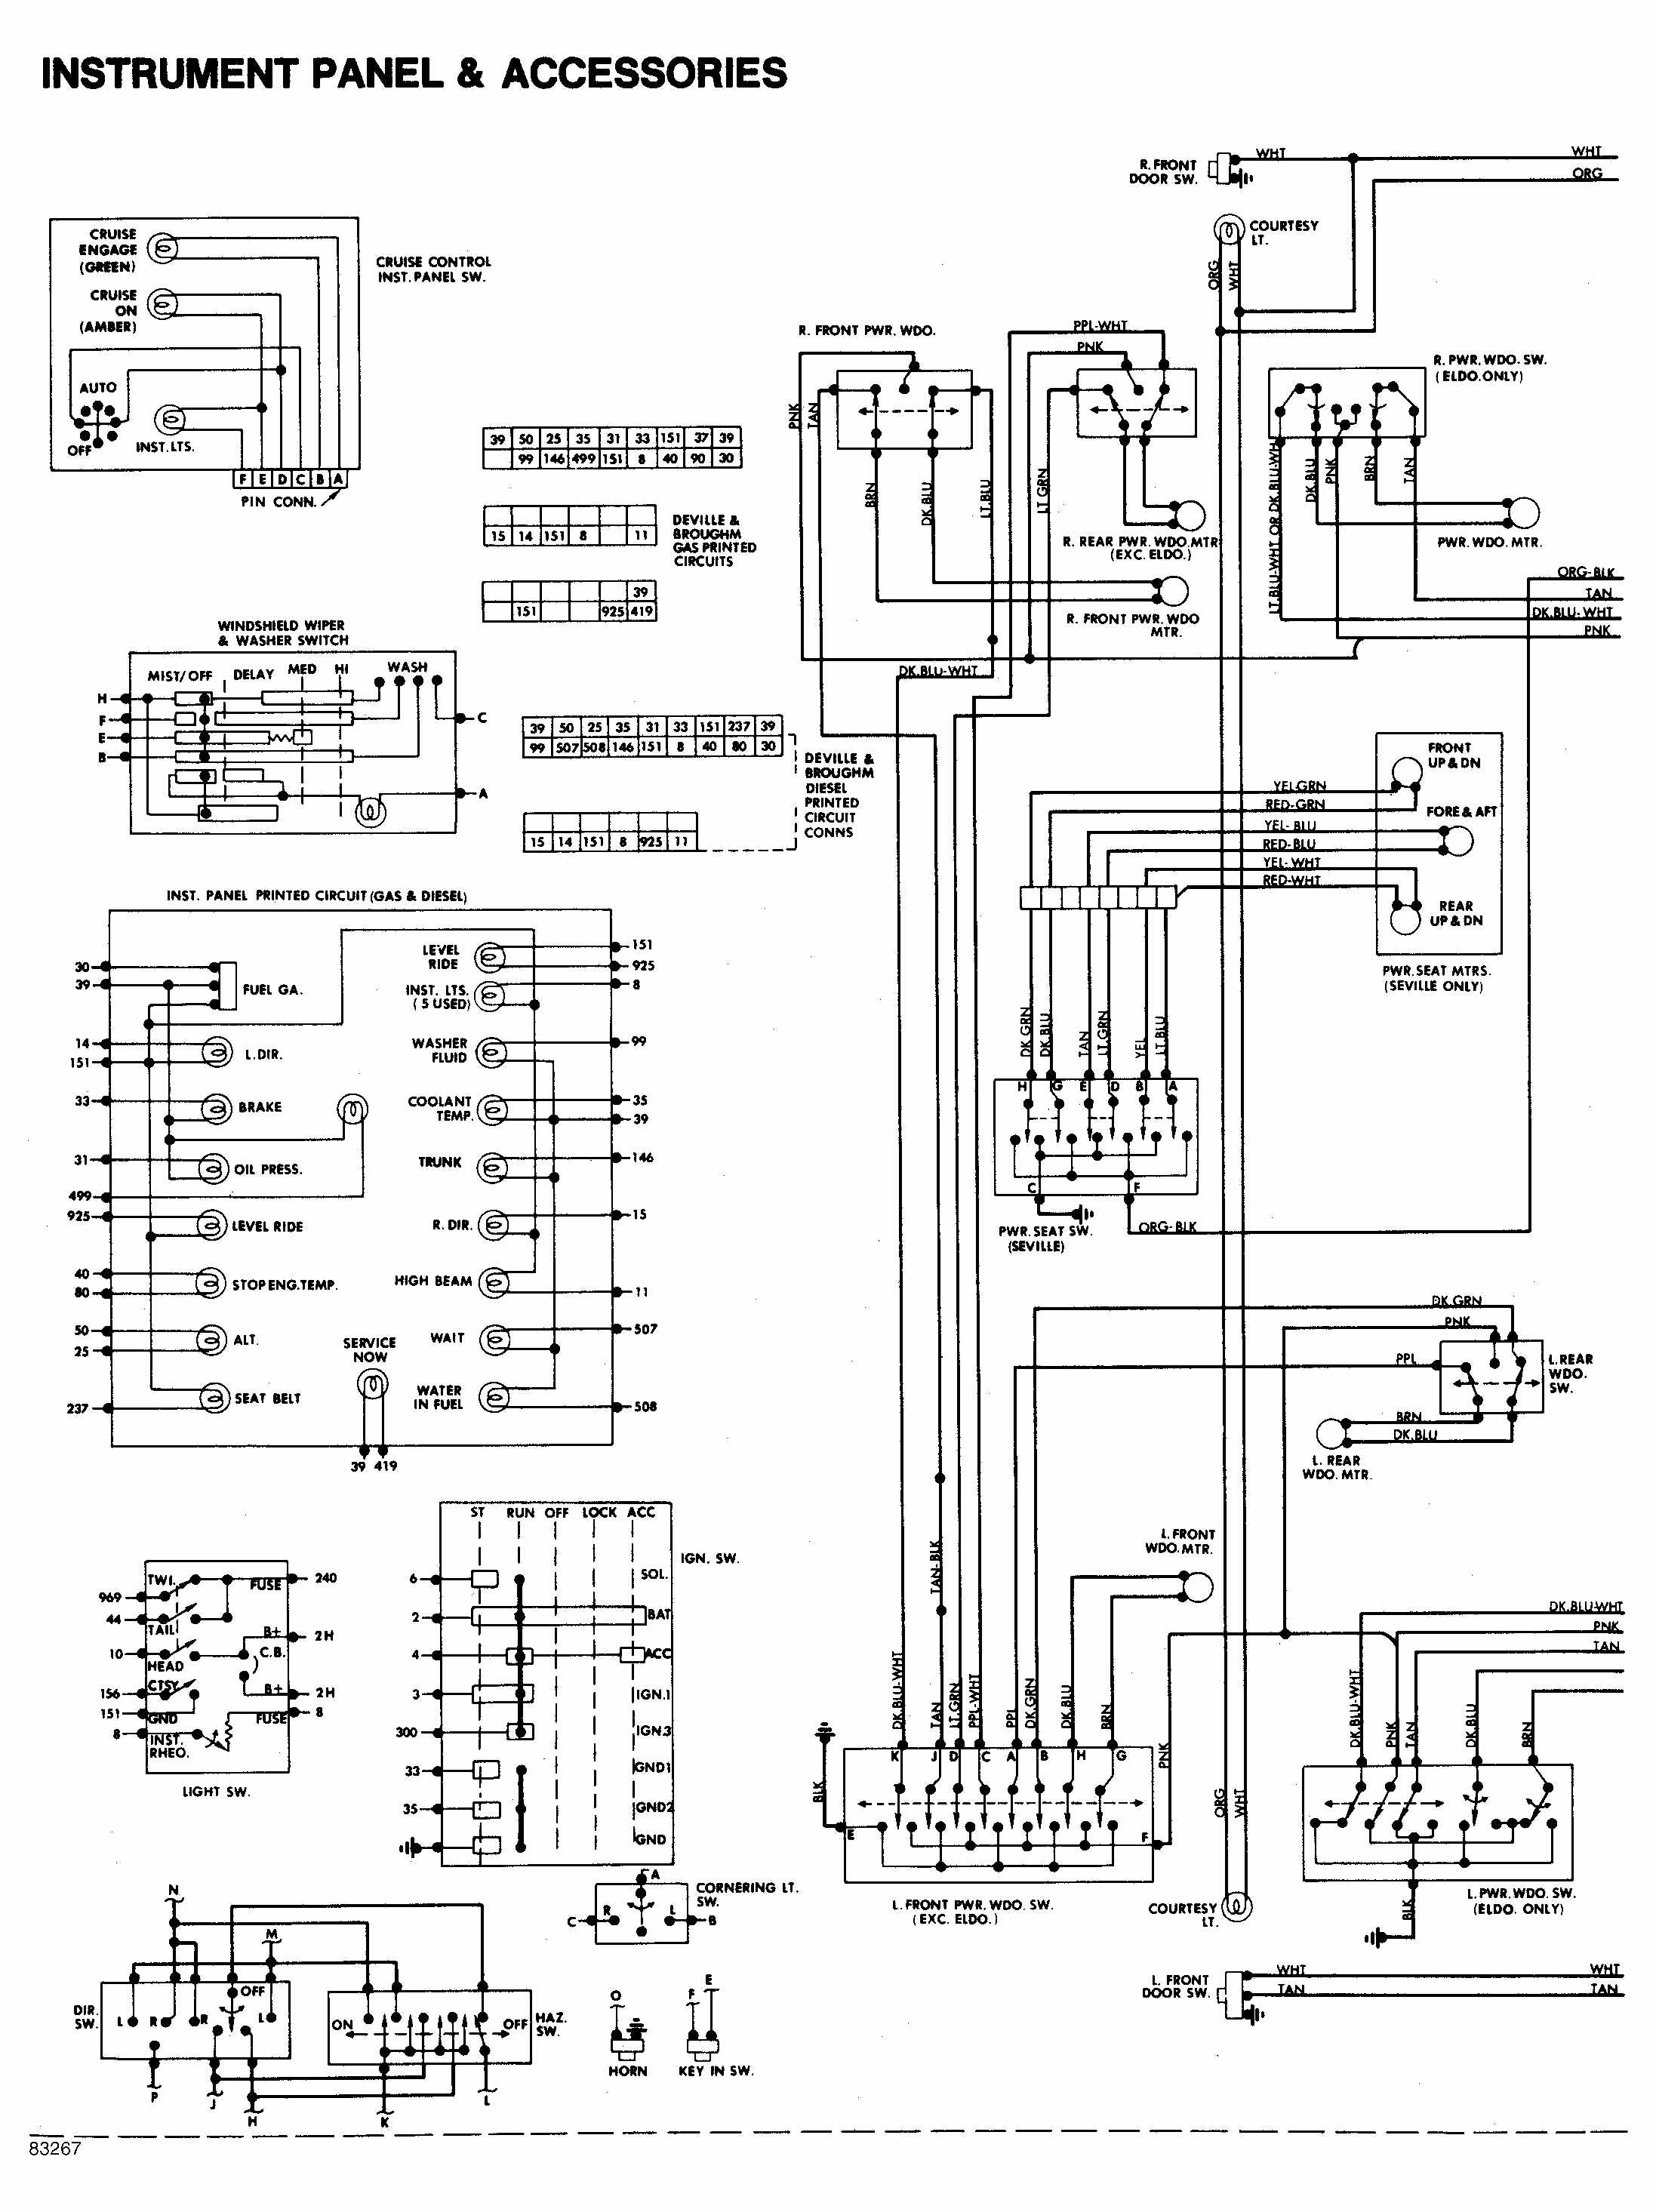 Fuse Panel Wiring Diagram For Corvette